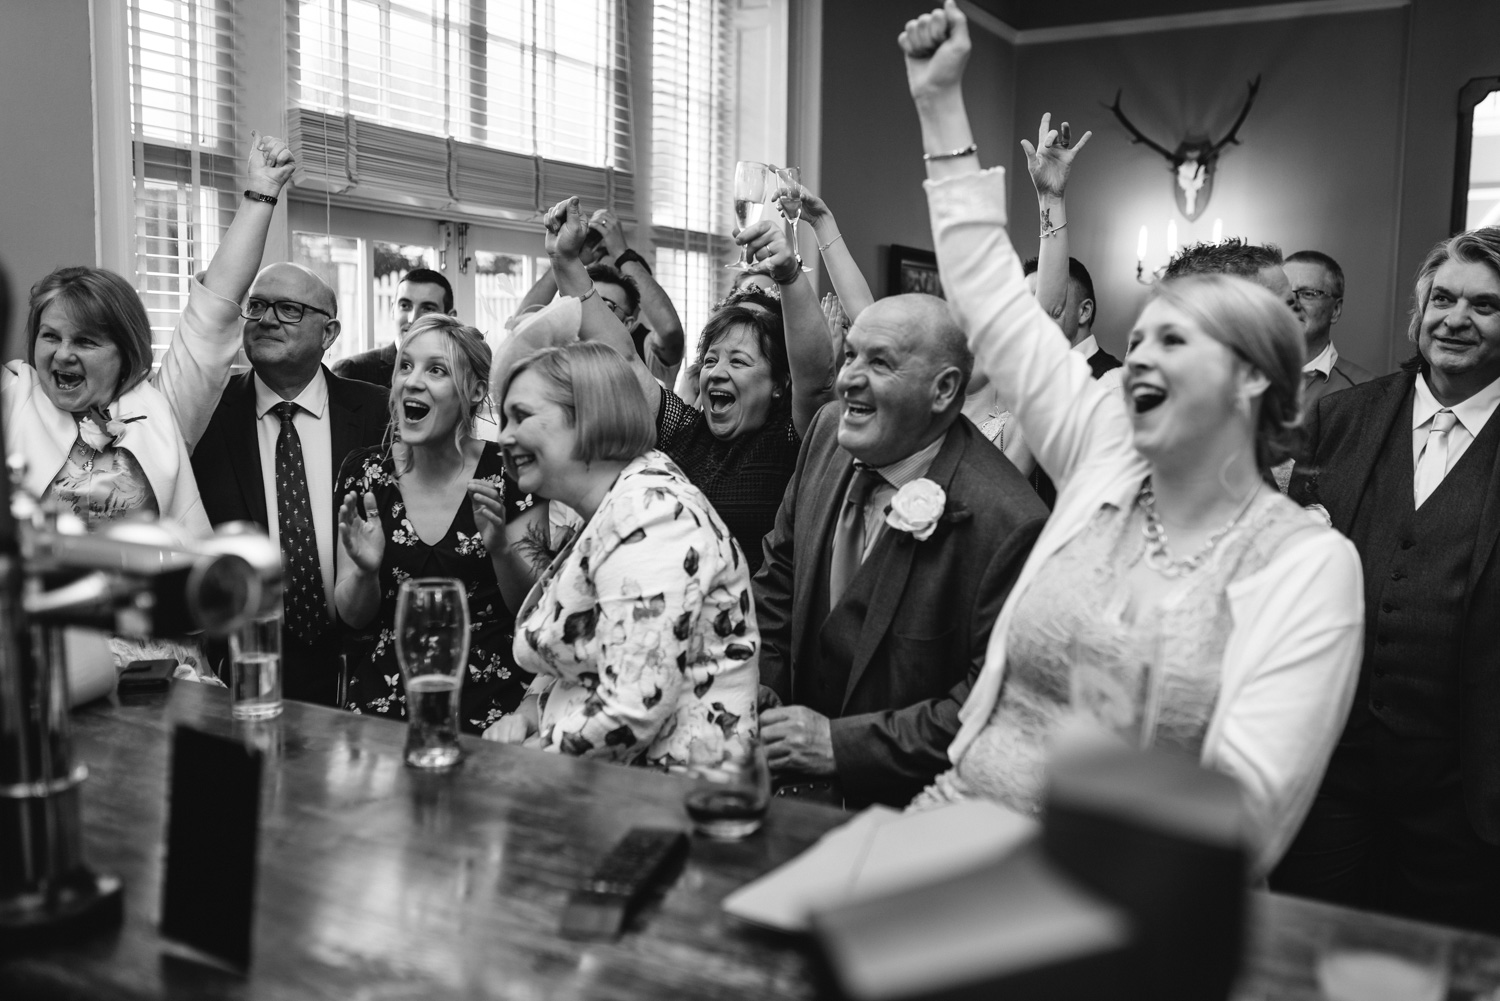 Wedding guests cheering rugby